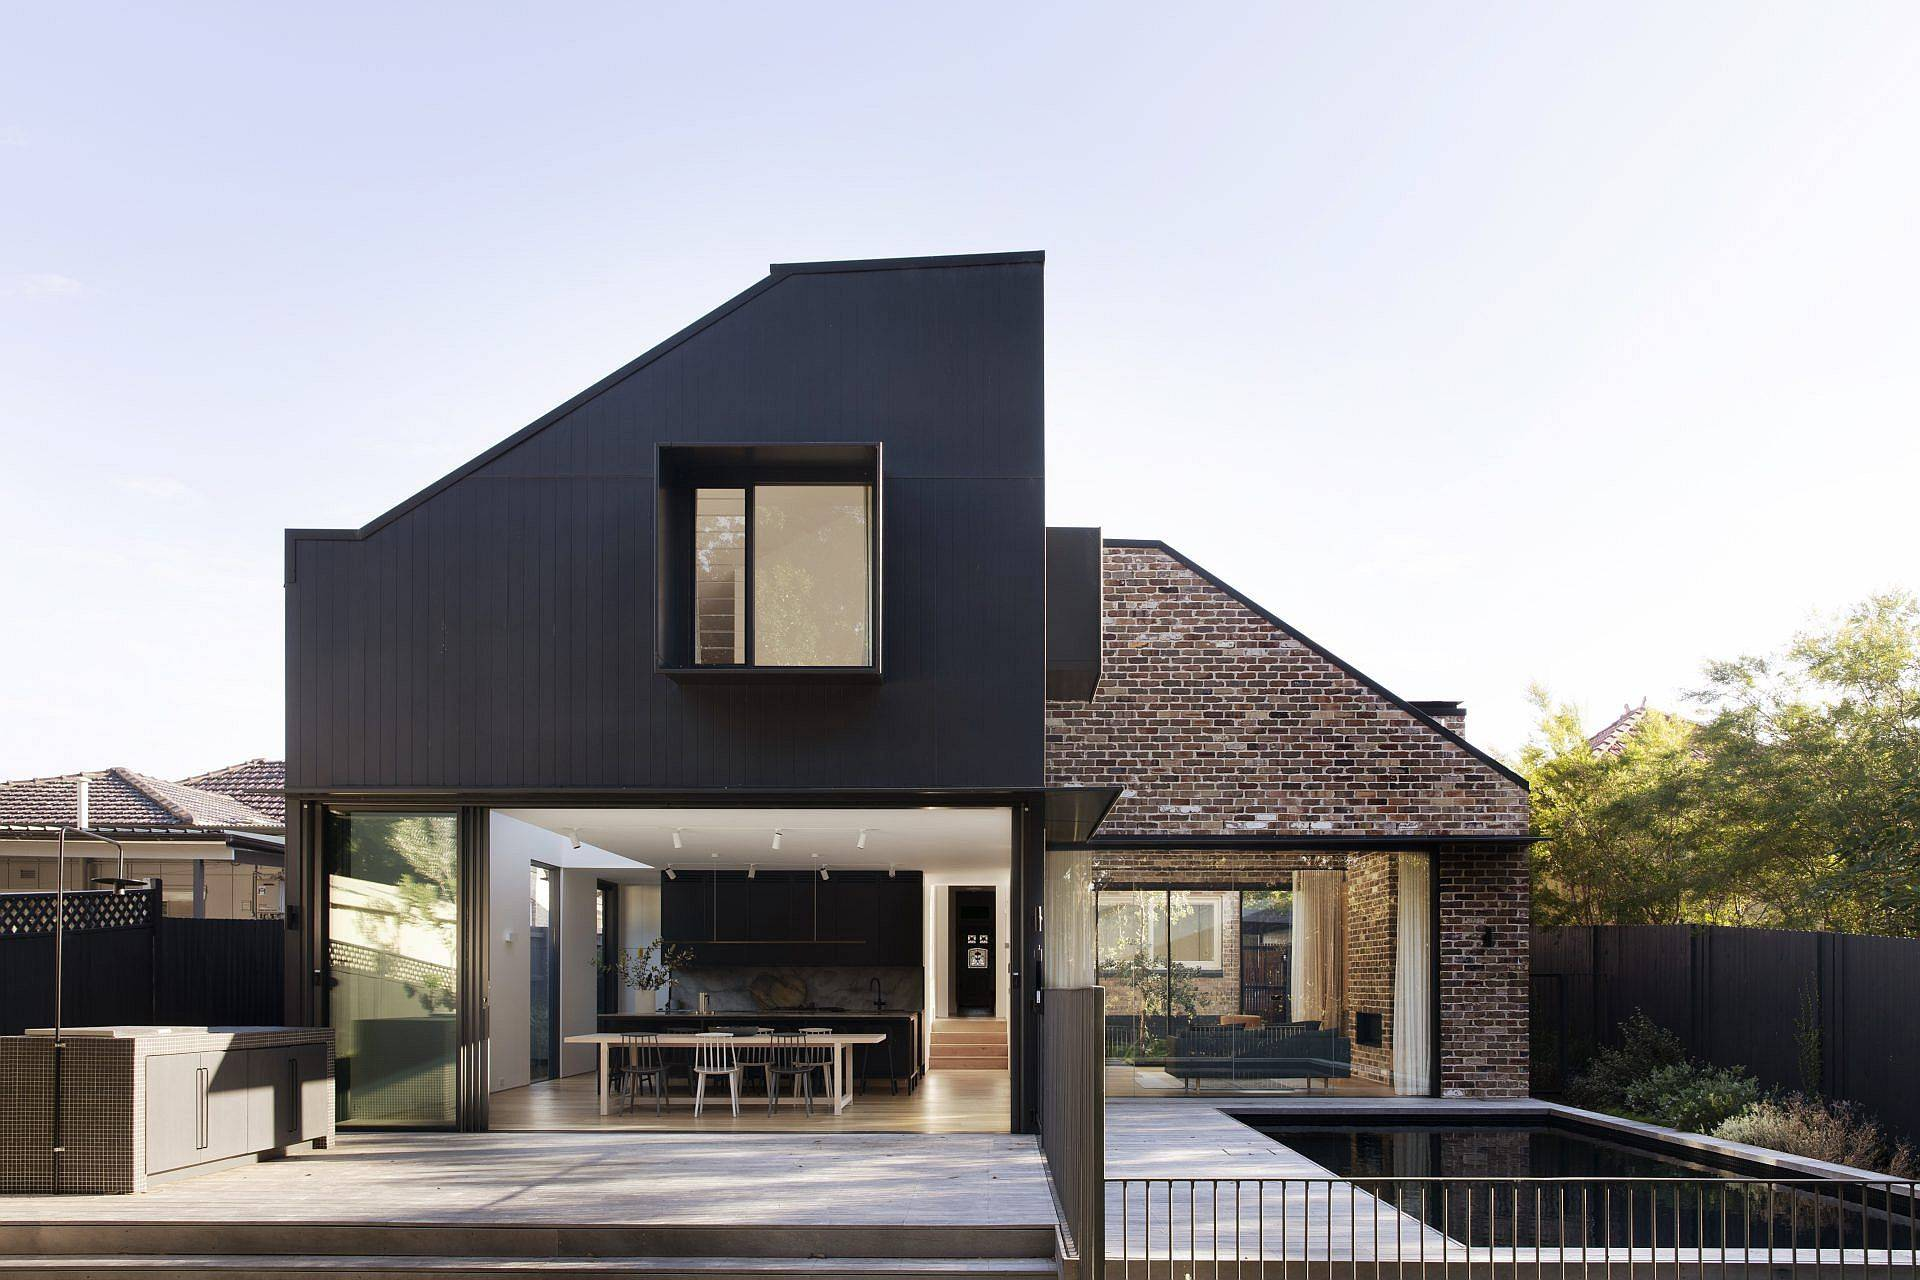 Planned-and-concealed-rear-extension-of-the-federation-era-home-79466